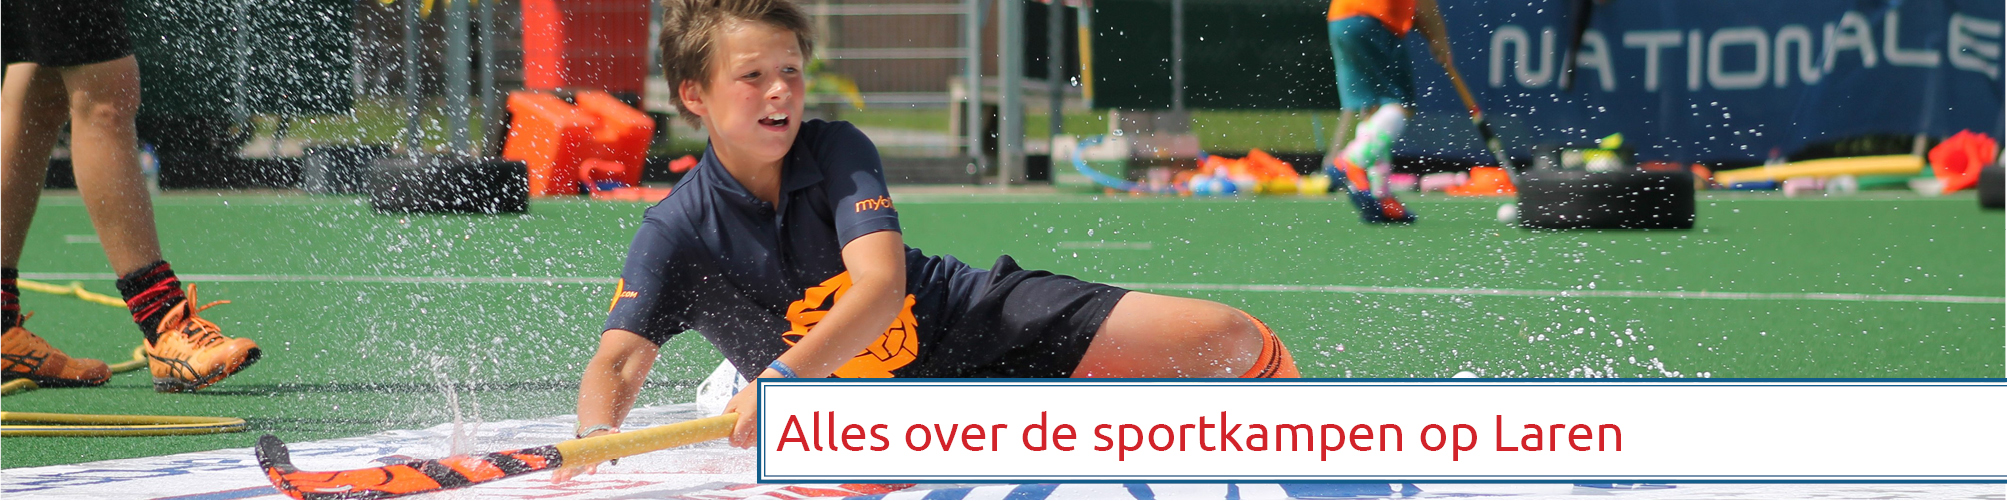 Nationale Sportkampen op Laren